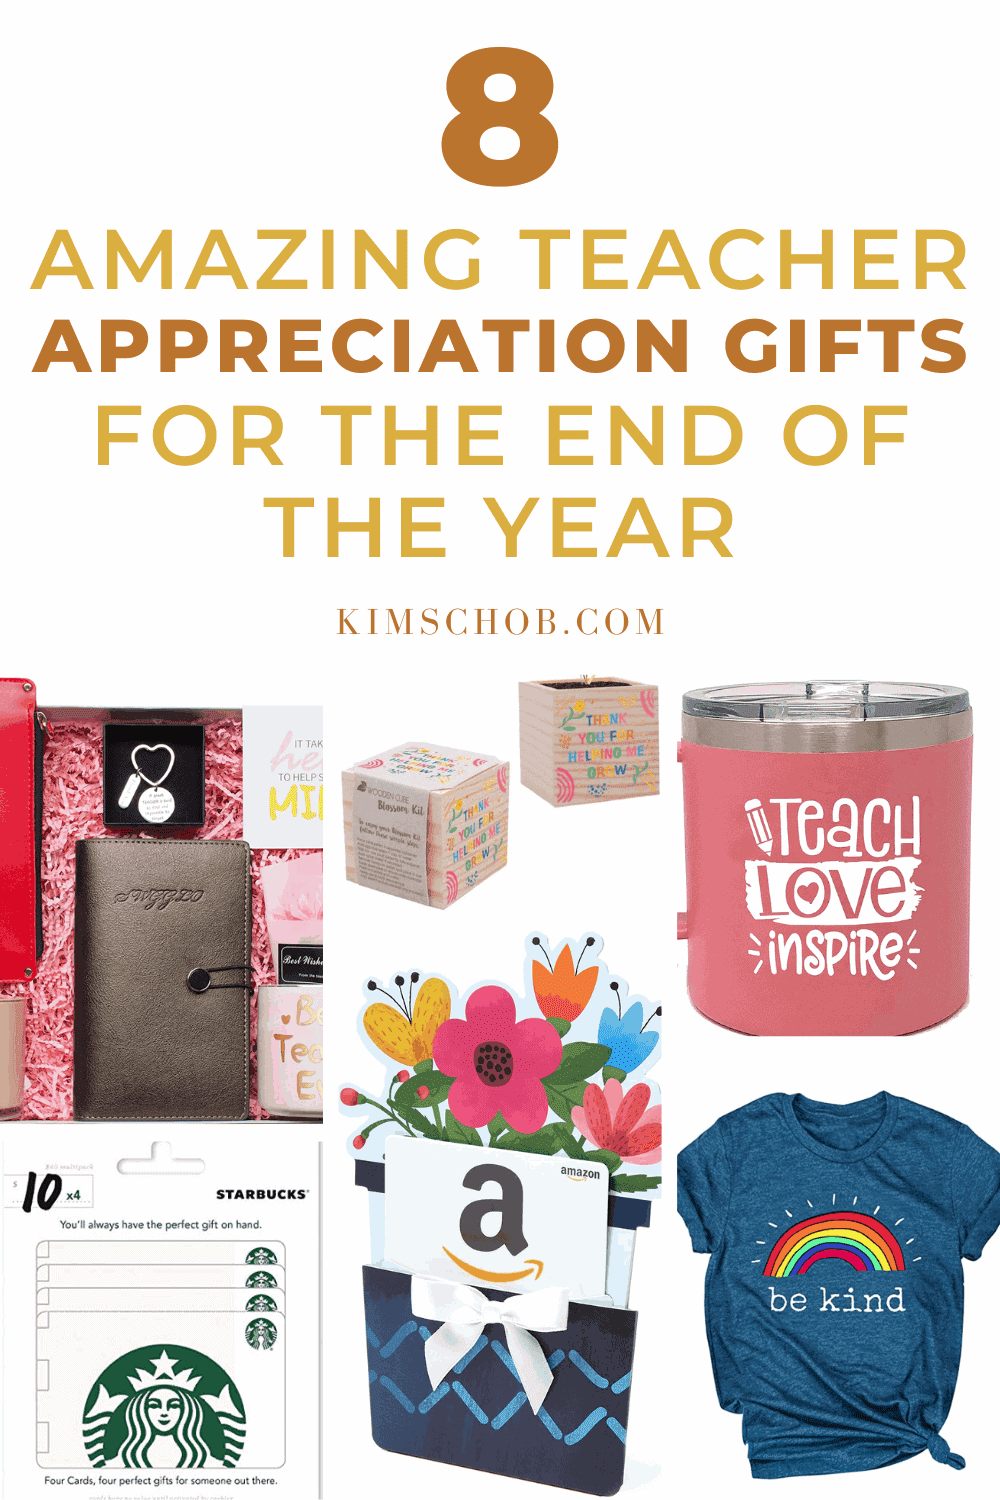 8-Amazing-Teacher-Appreciation-Gifts-For-The-End-Of-The-Year